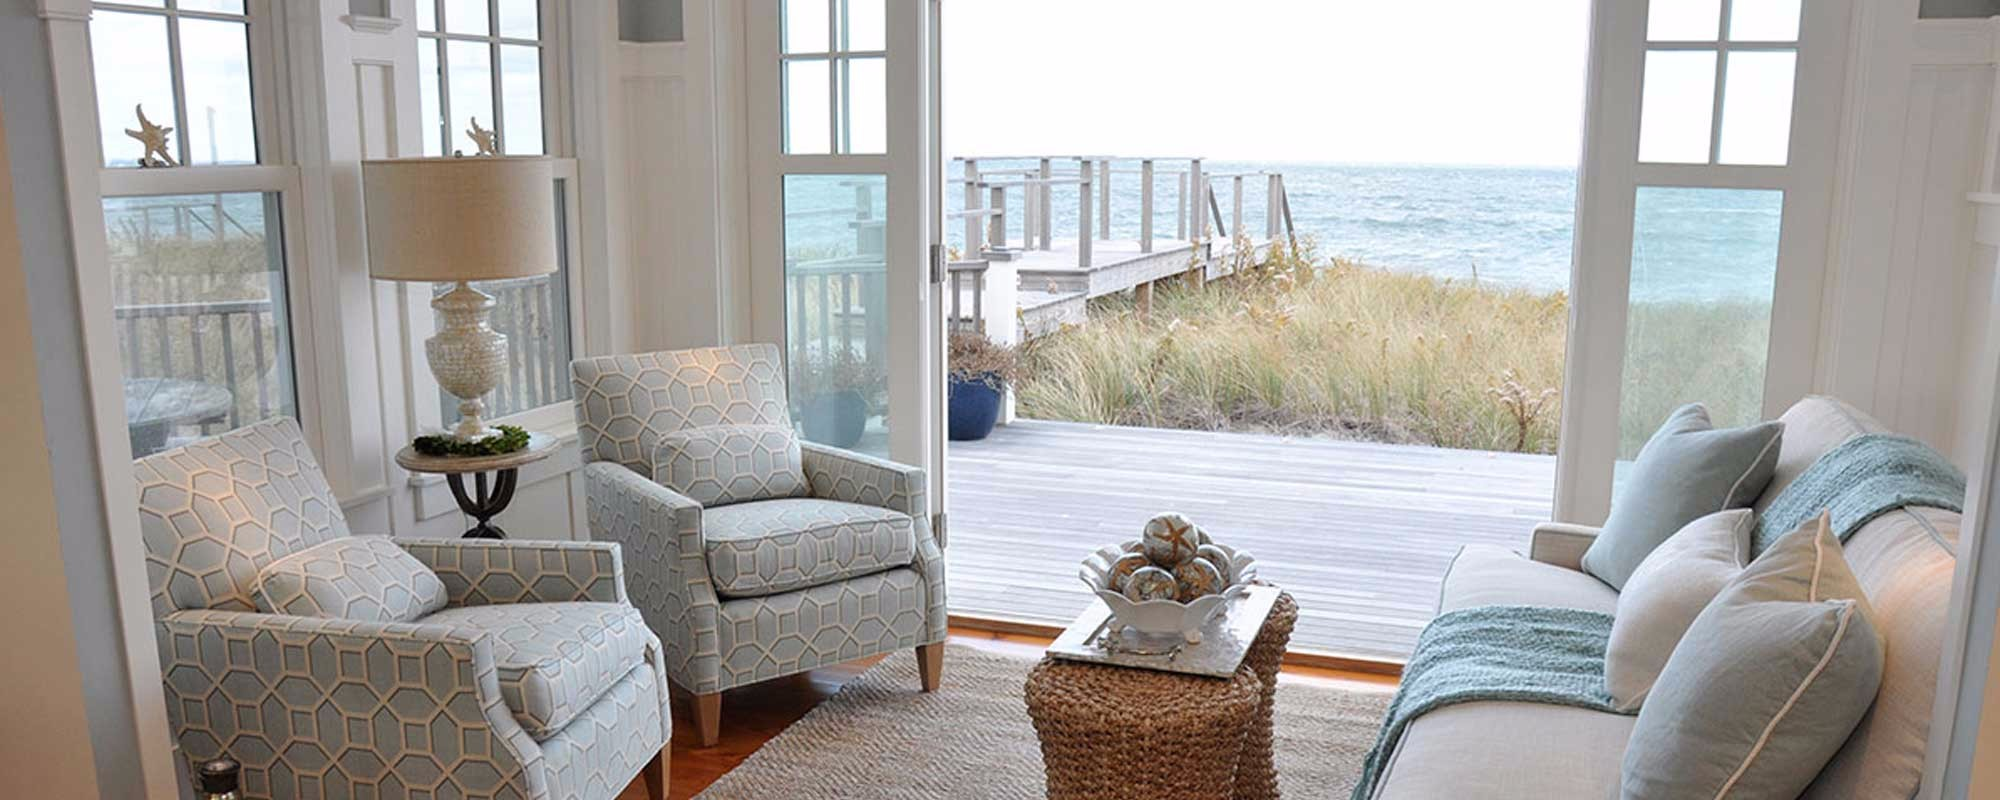 Interior design cape cod ma casabella interiors Interior home